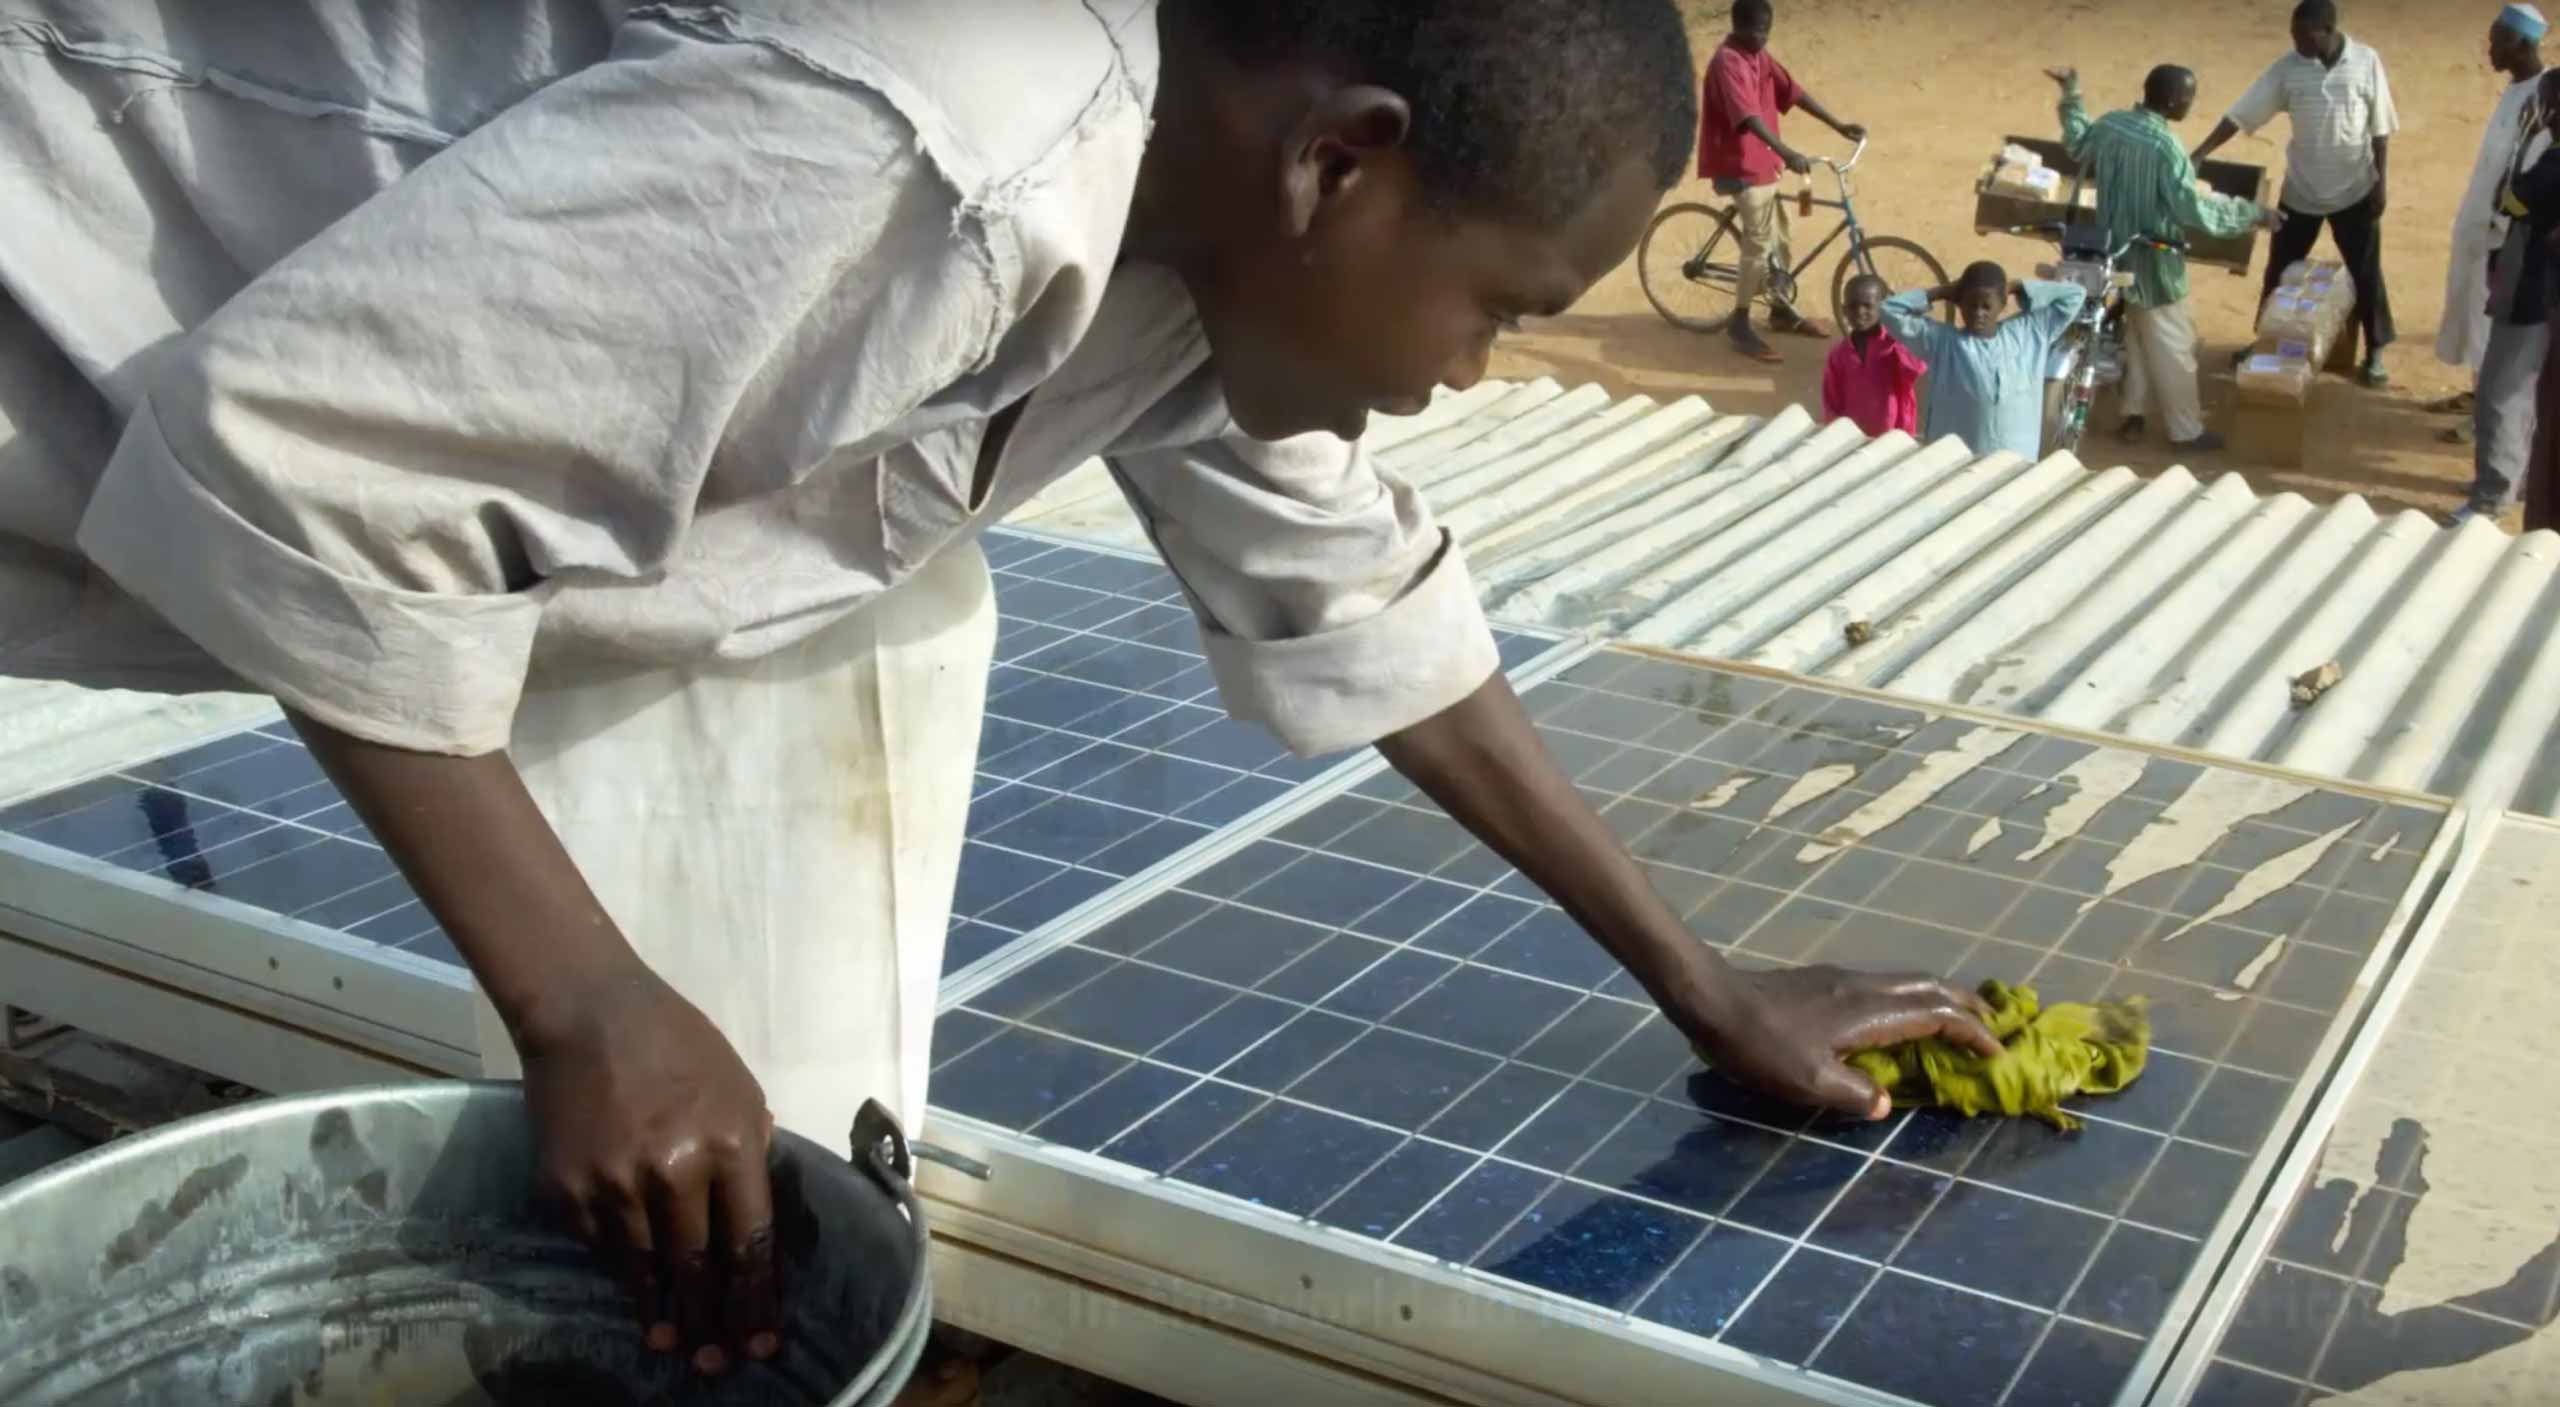 An African man cleans the solar panels atop one of the village's buildings by hand.